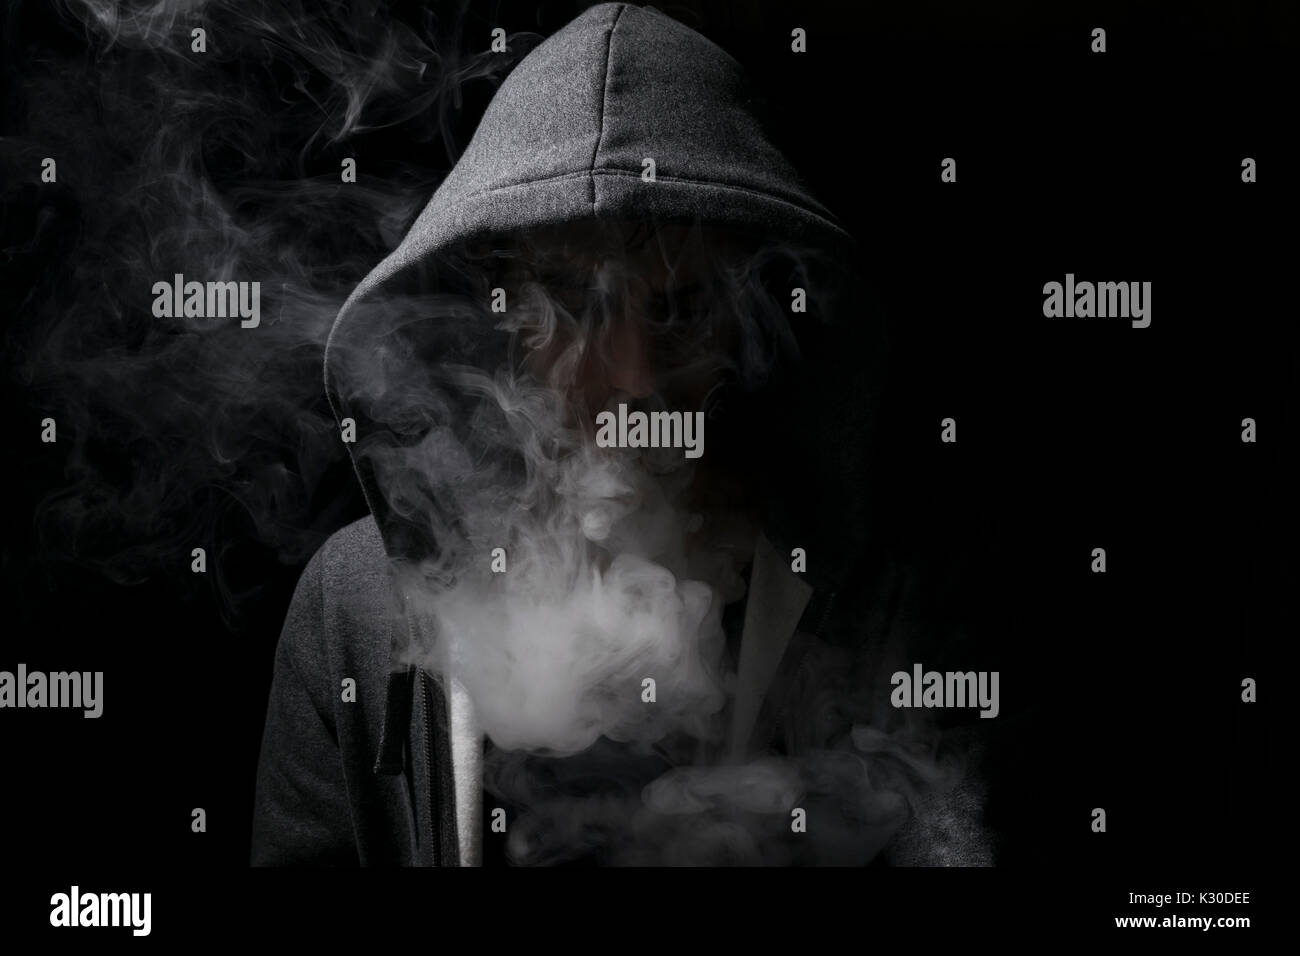 vaping man wearing a hoody with lots of smoking clouds. - Stock Image